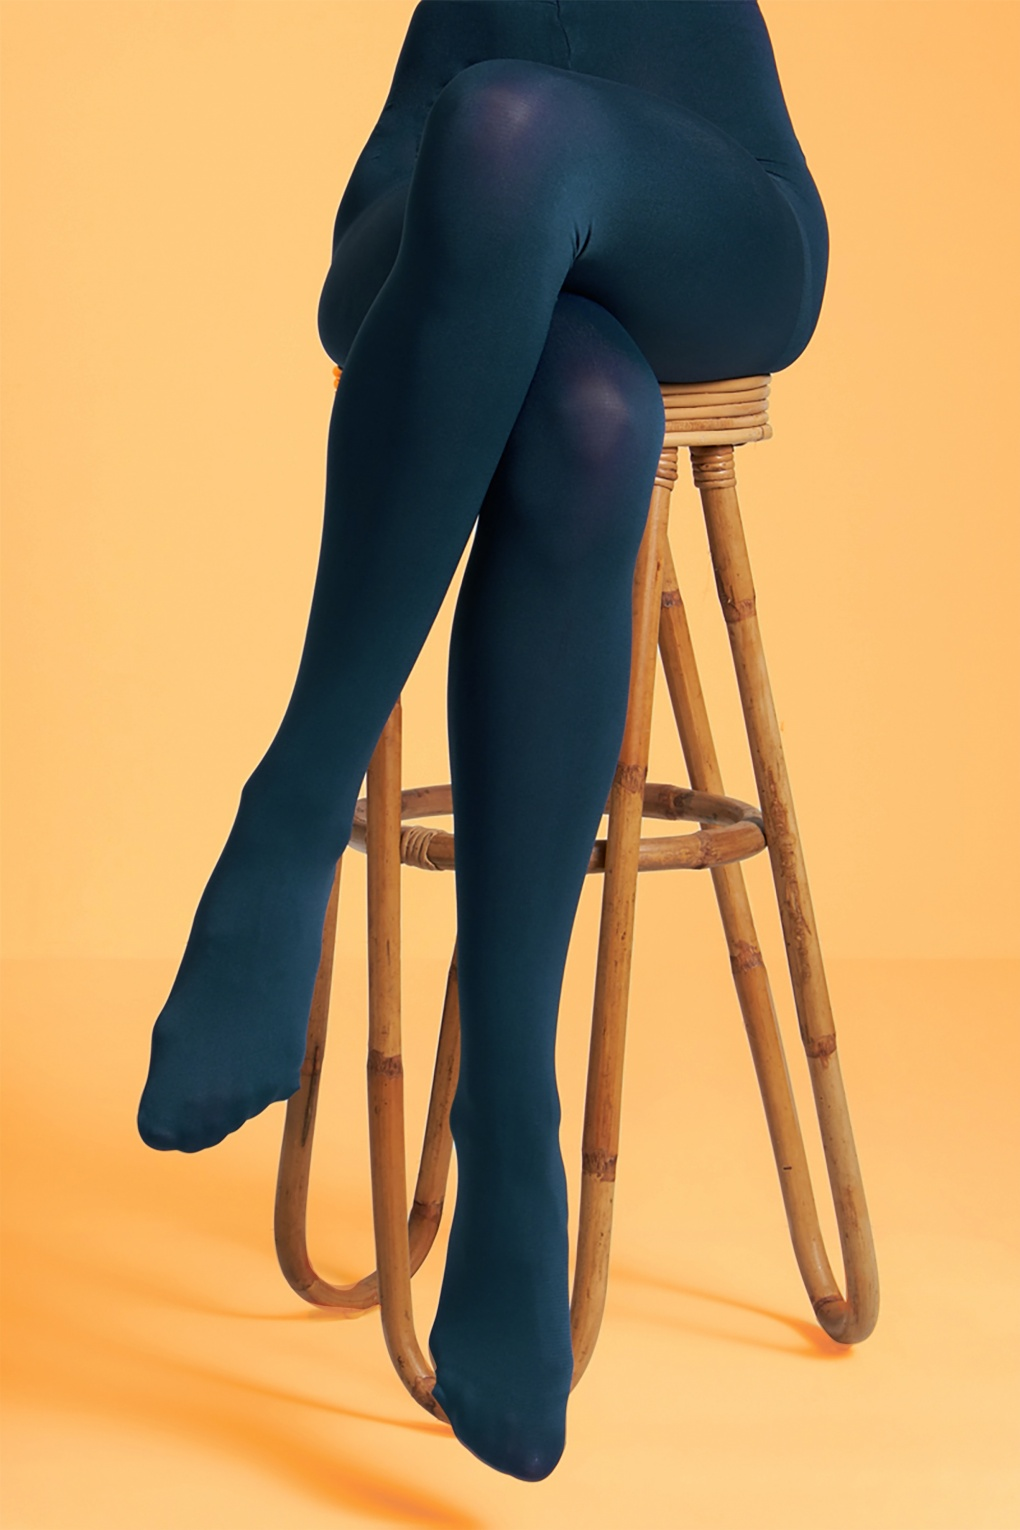 1960s Tights, Stockings, Panty Hose, Knee High Socks 60s Solid Tights in Autumn Blue £12.86 AT vintagedancer.com